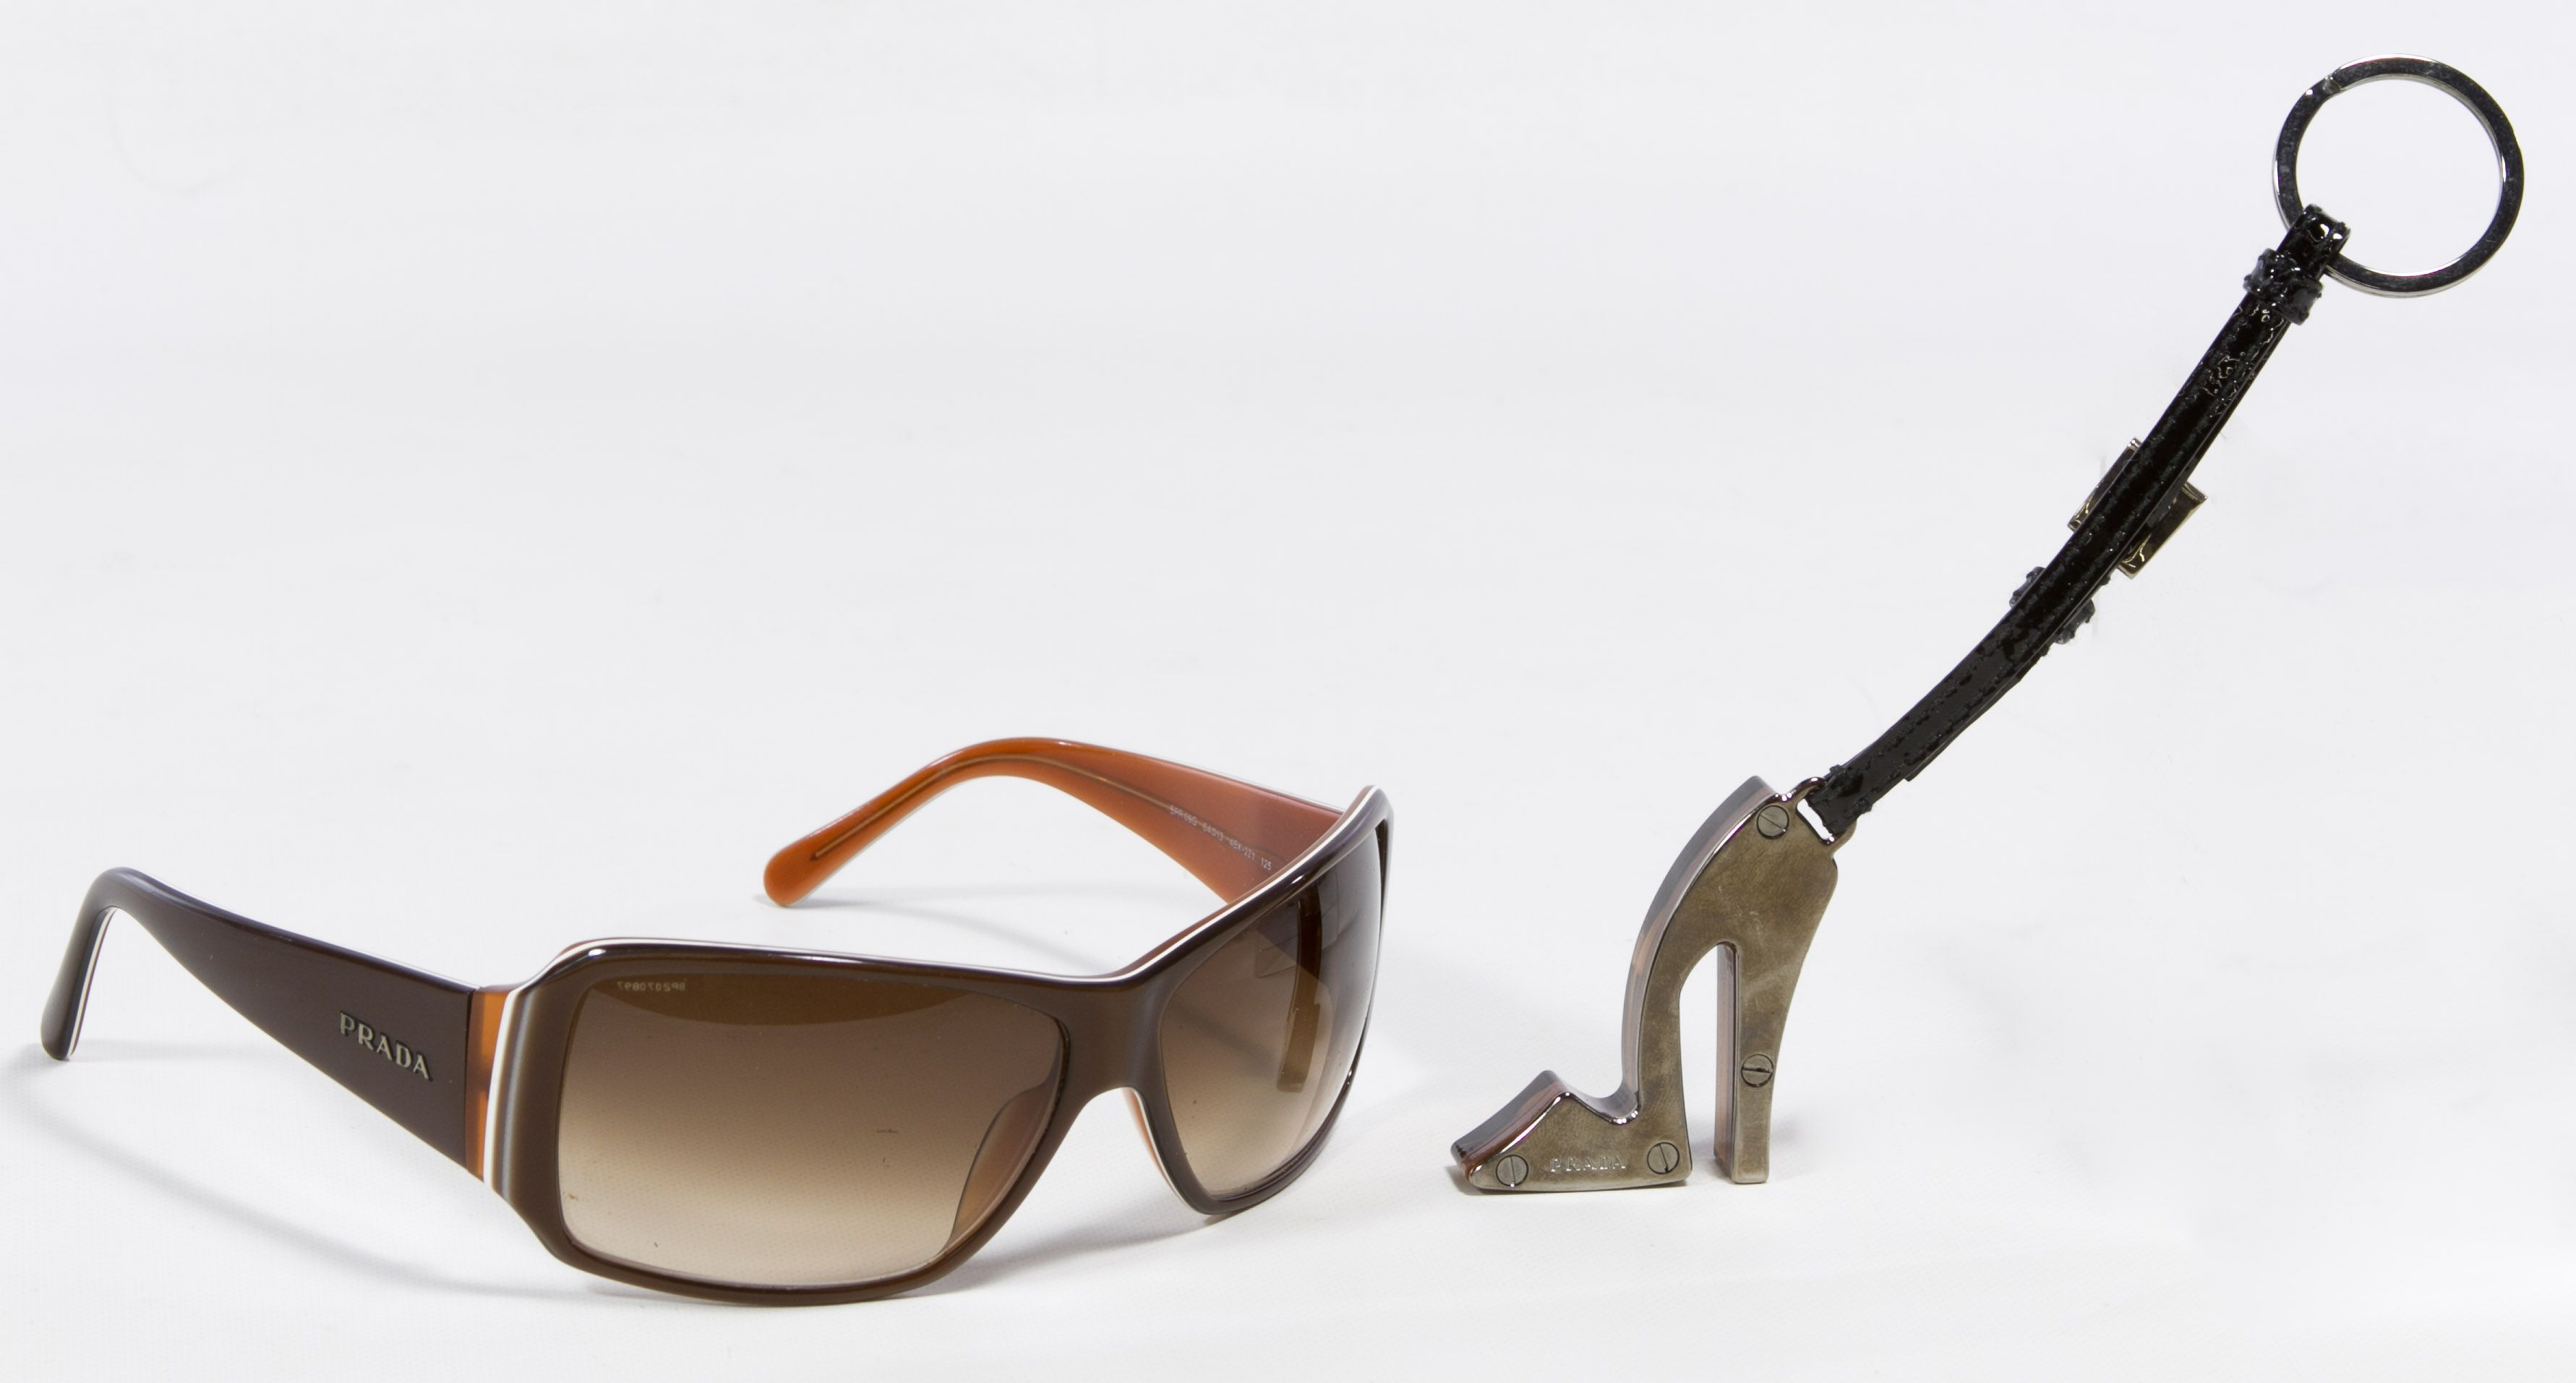 Lot 497: Prada Sunglasses and Keychain; Together with a black case and black cloth